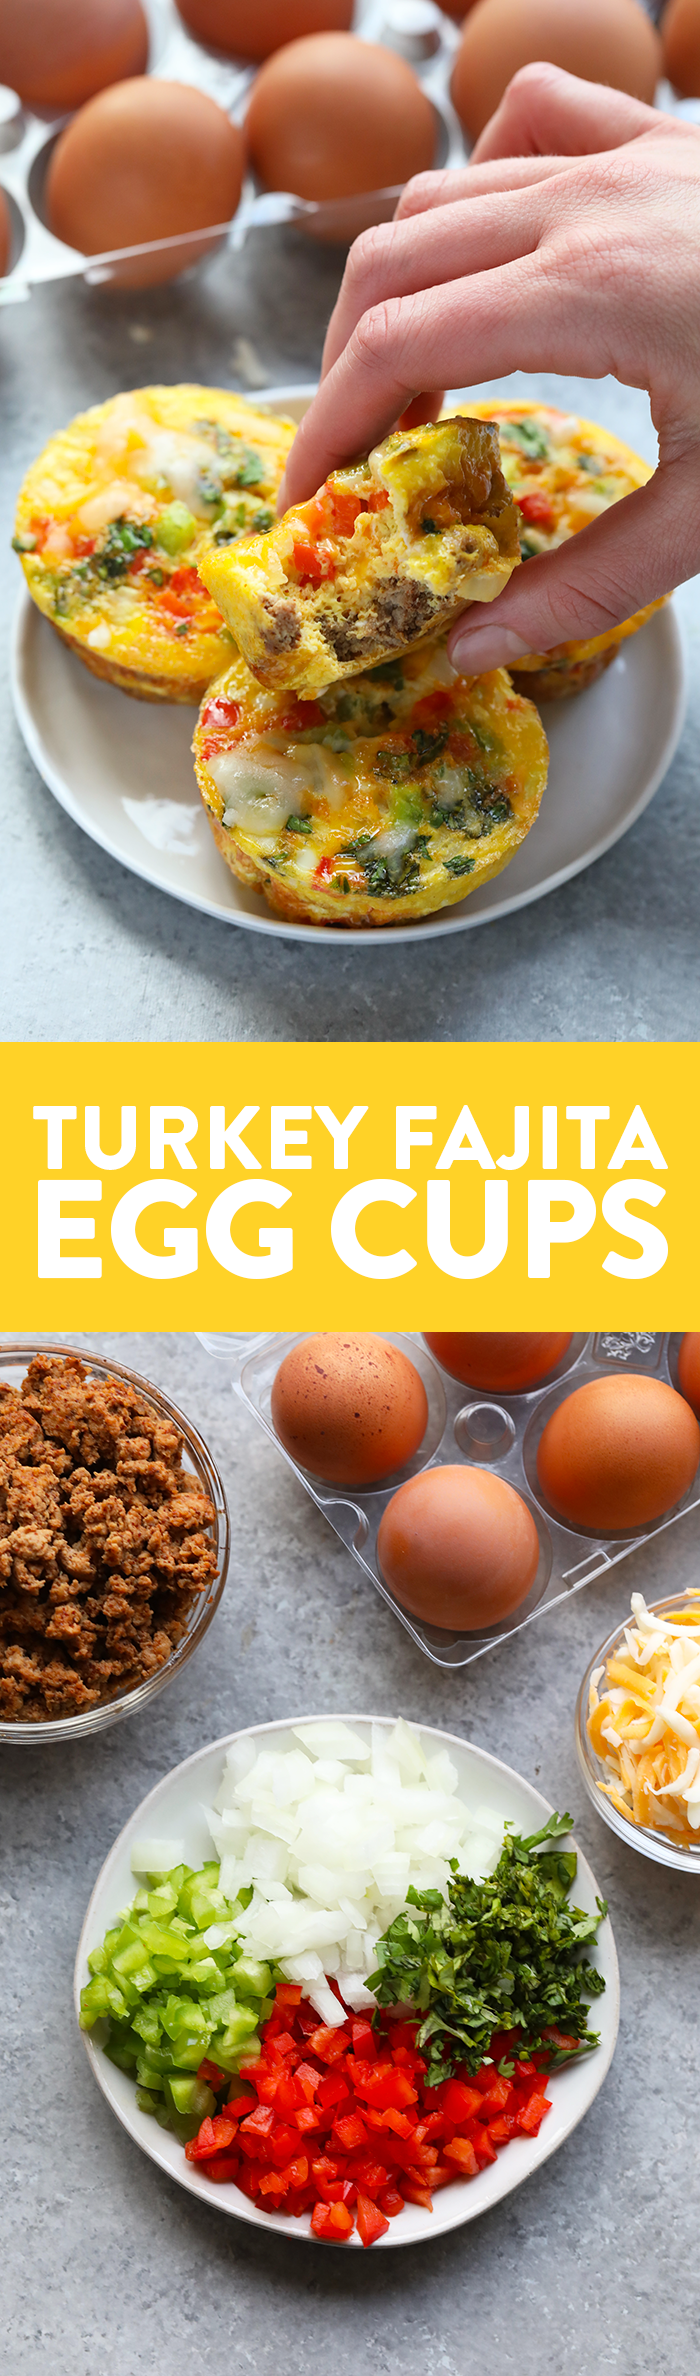 These turkey fajita egg cups are made with lean ground turkey, colorful green and red peppers, onions, and your favorite fajita spices! Don't forget about the cheese on top.